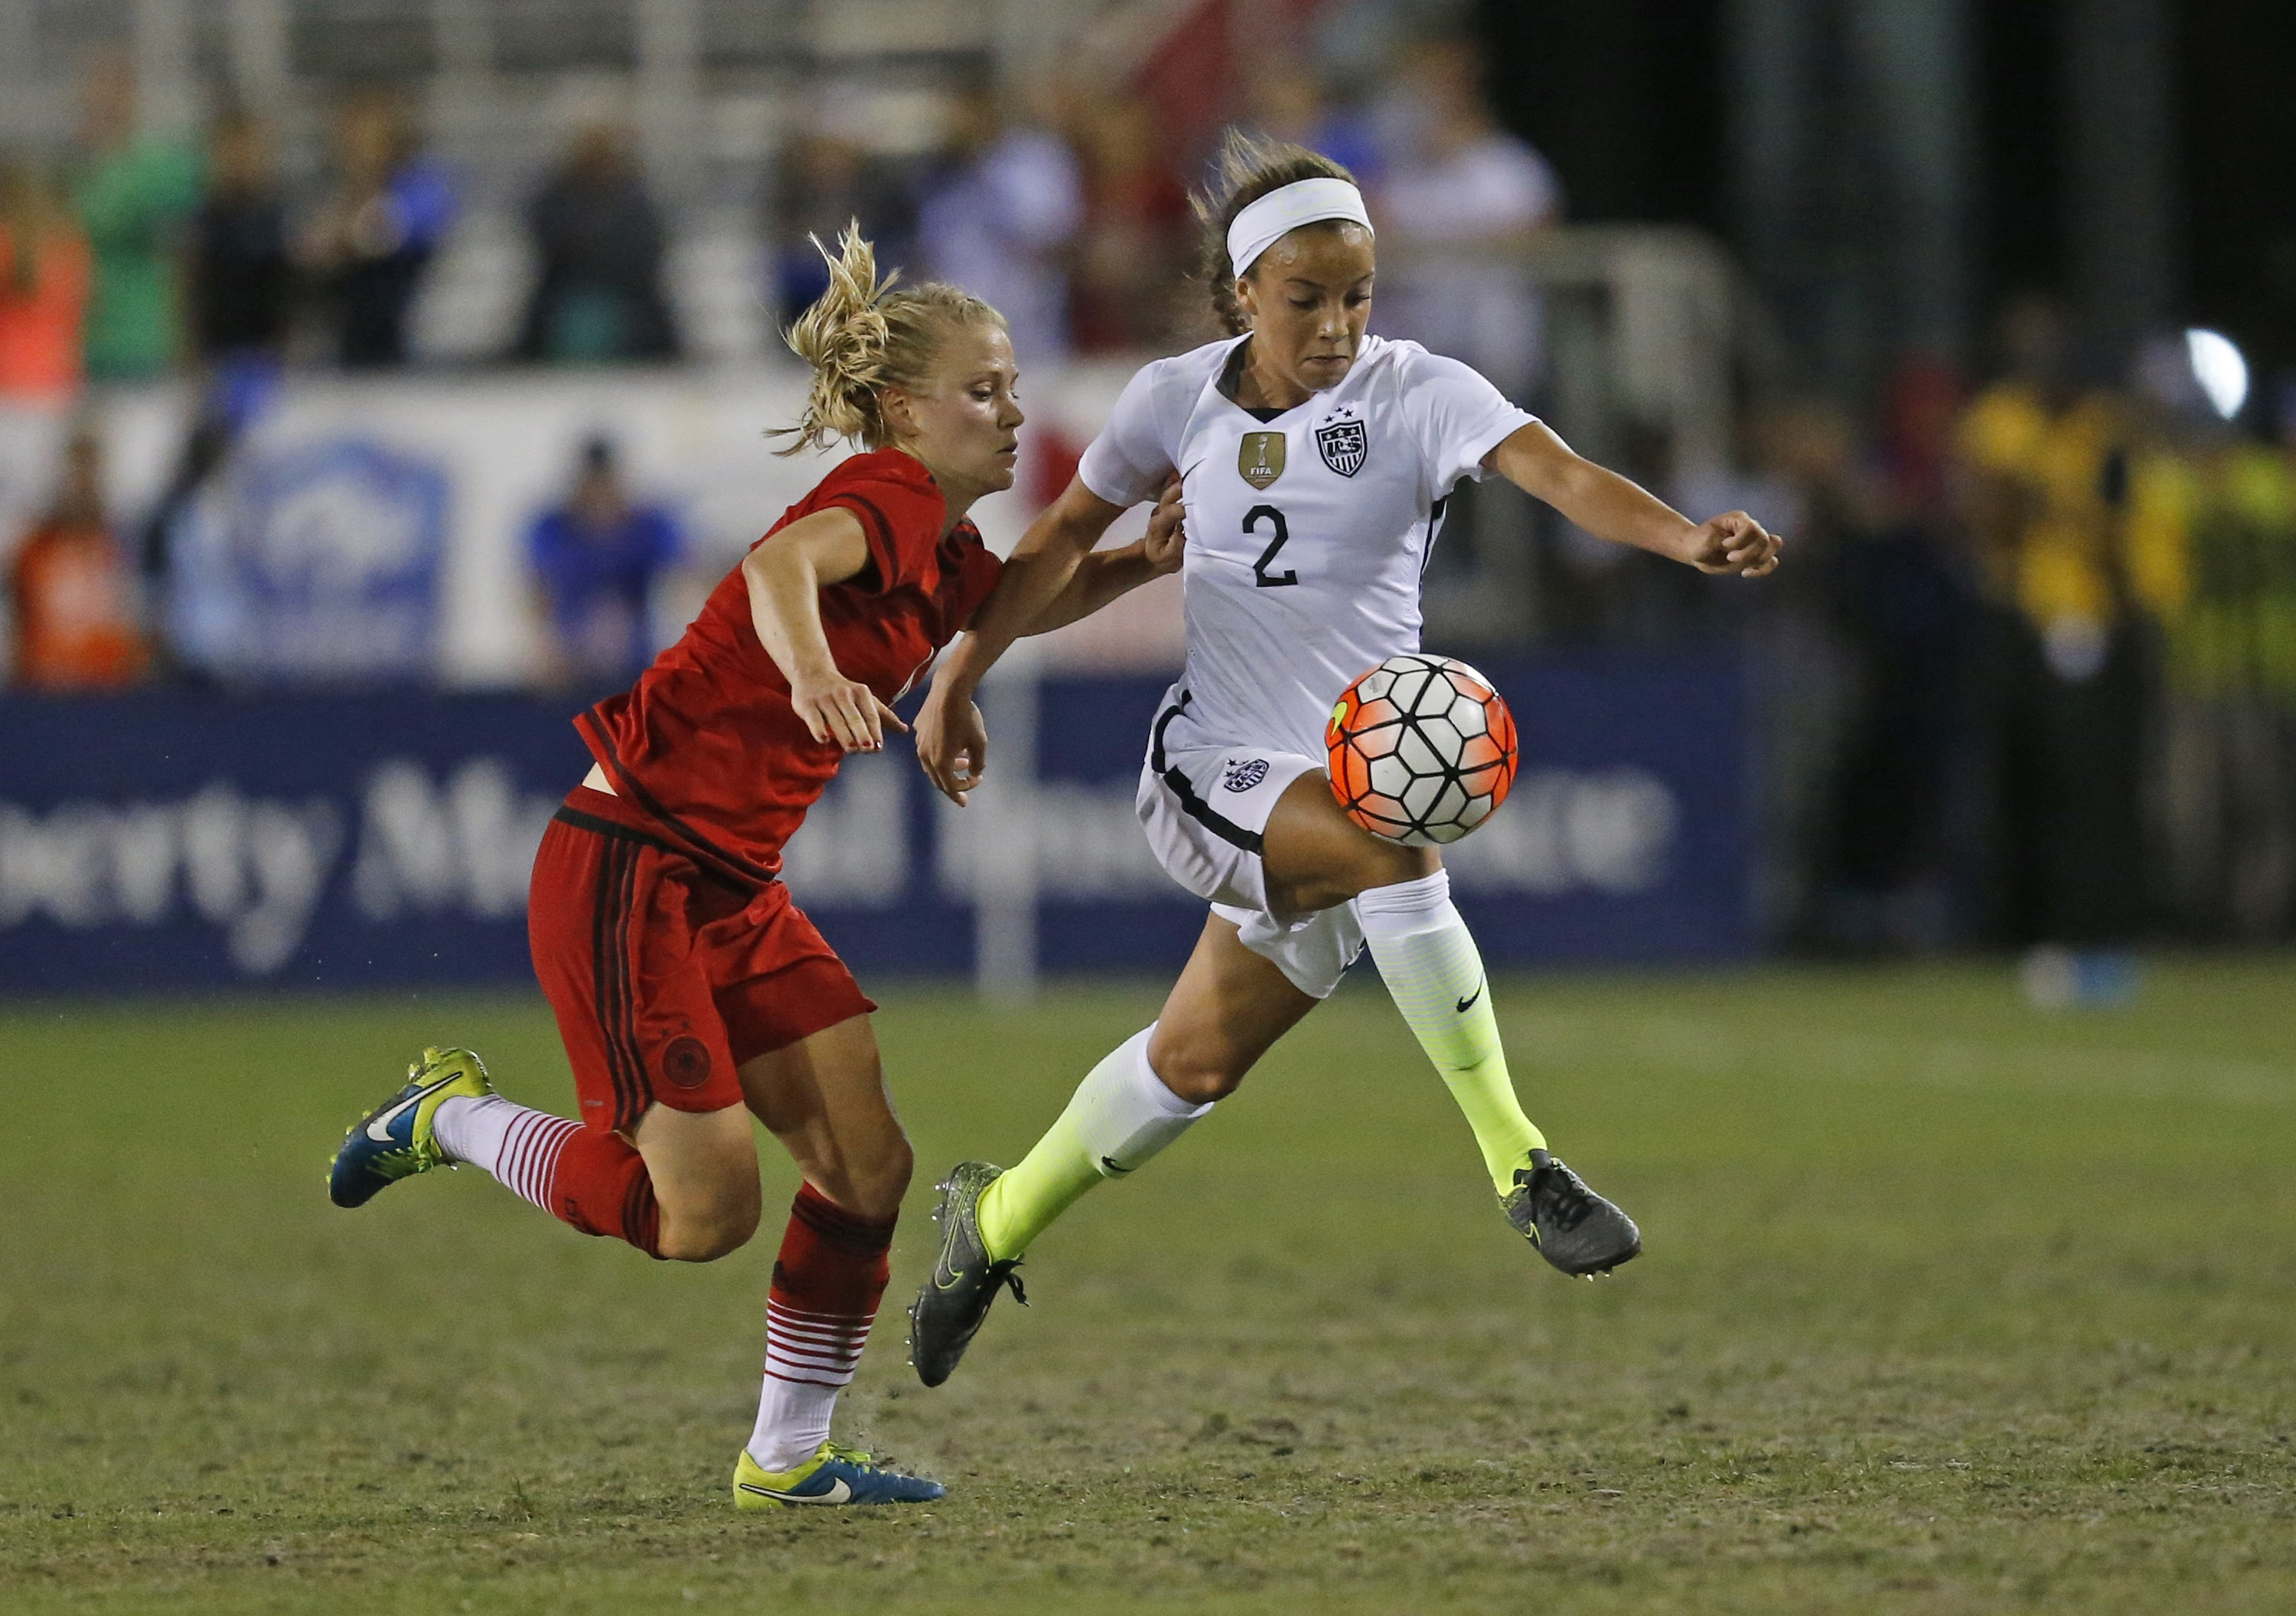 <p>Mallory Pugh, right, plays in a U.S. women's soccer match against Germany in March, 2016. </p>